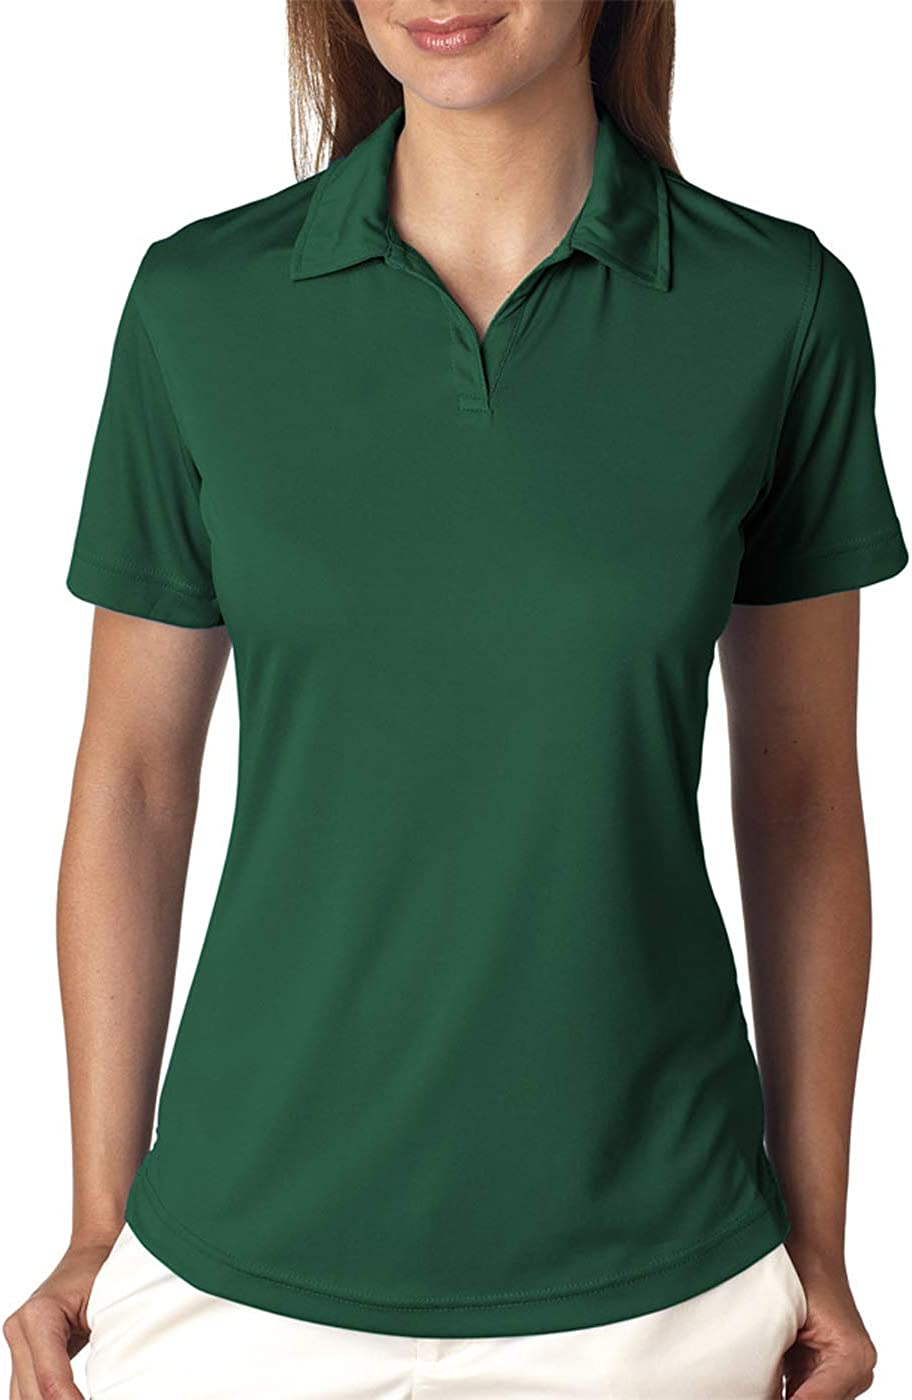 UltraClubs Women's Cool & Dry Sport Performance Interlock Polo, Forest Green, Large